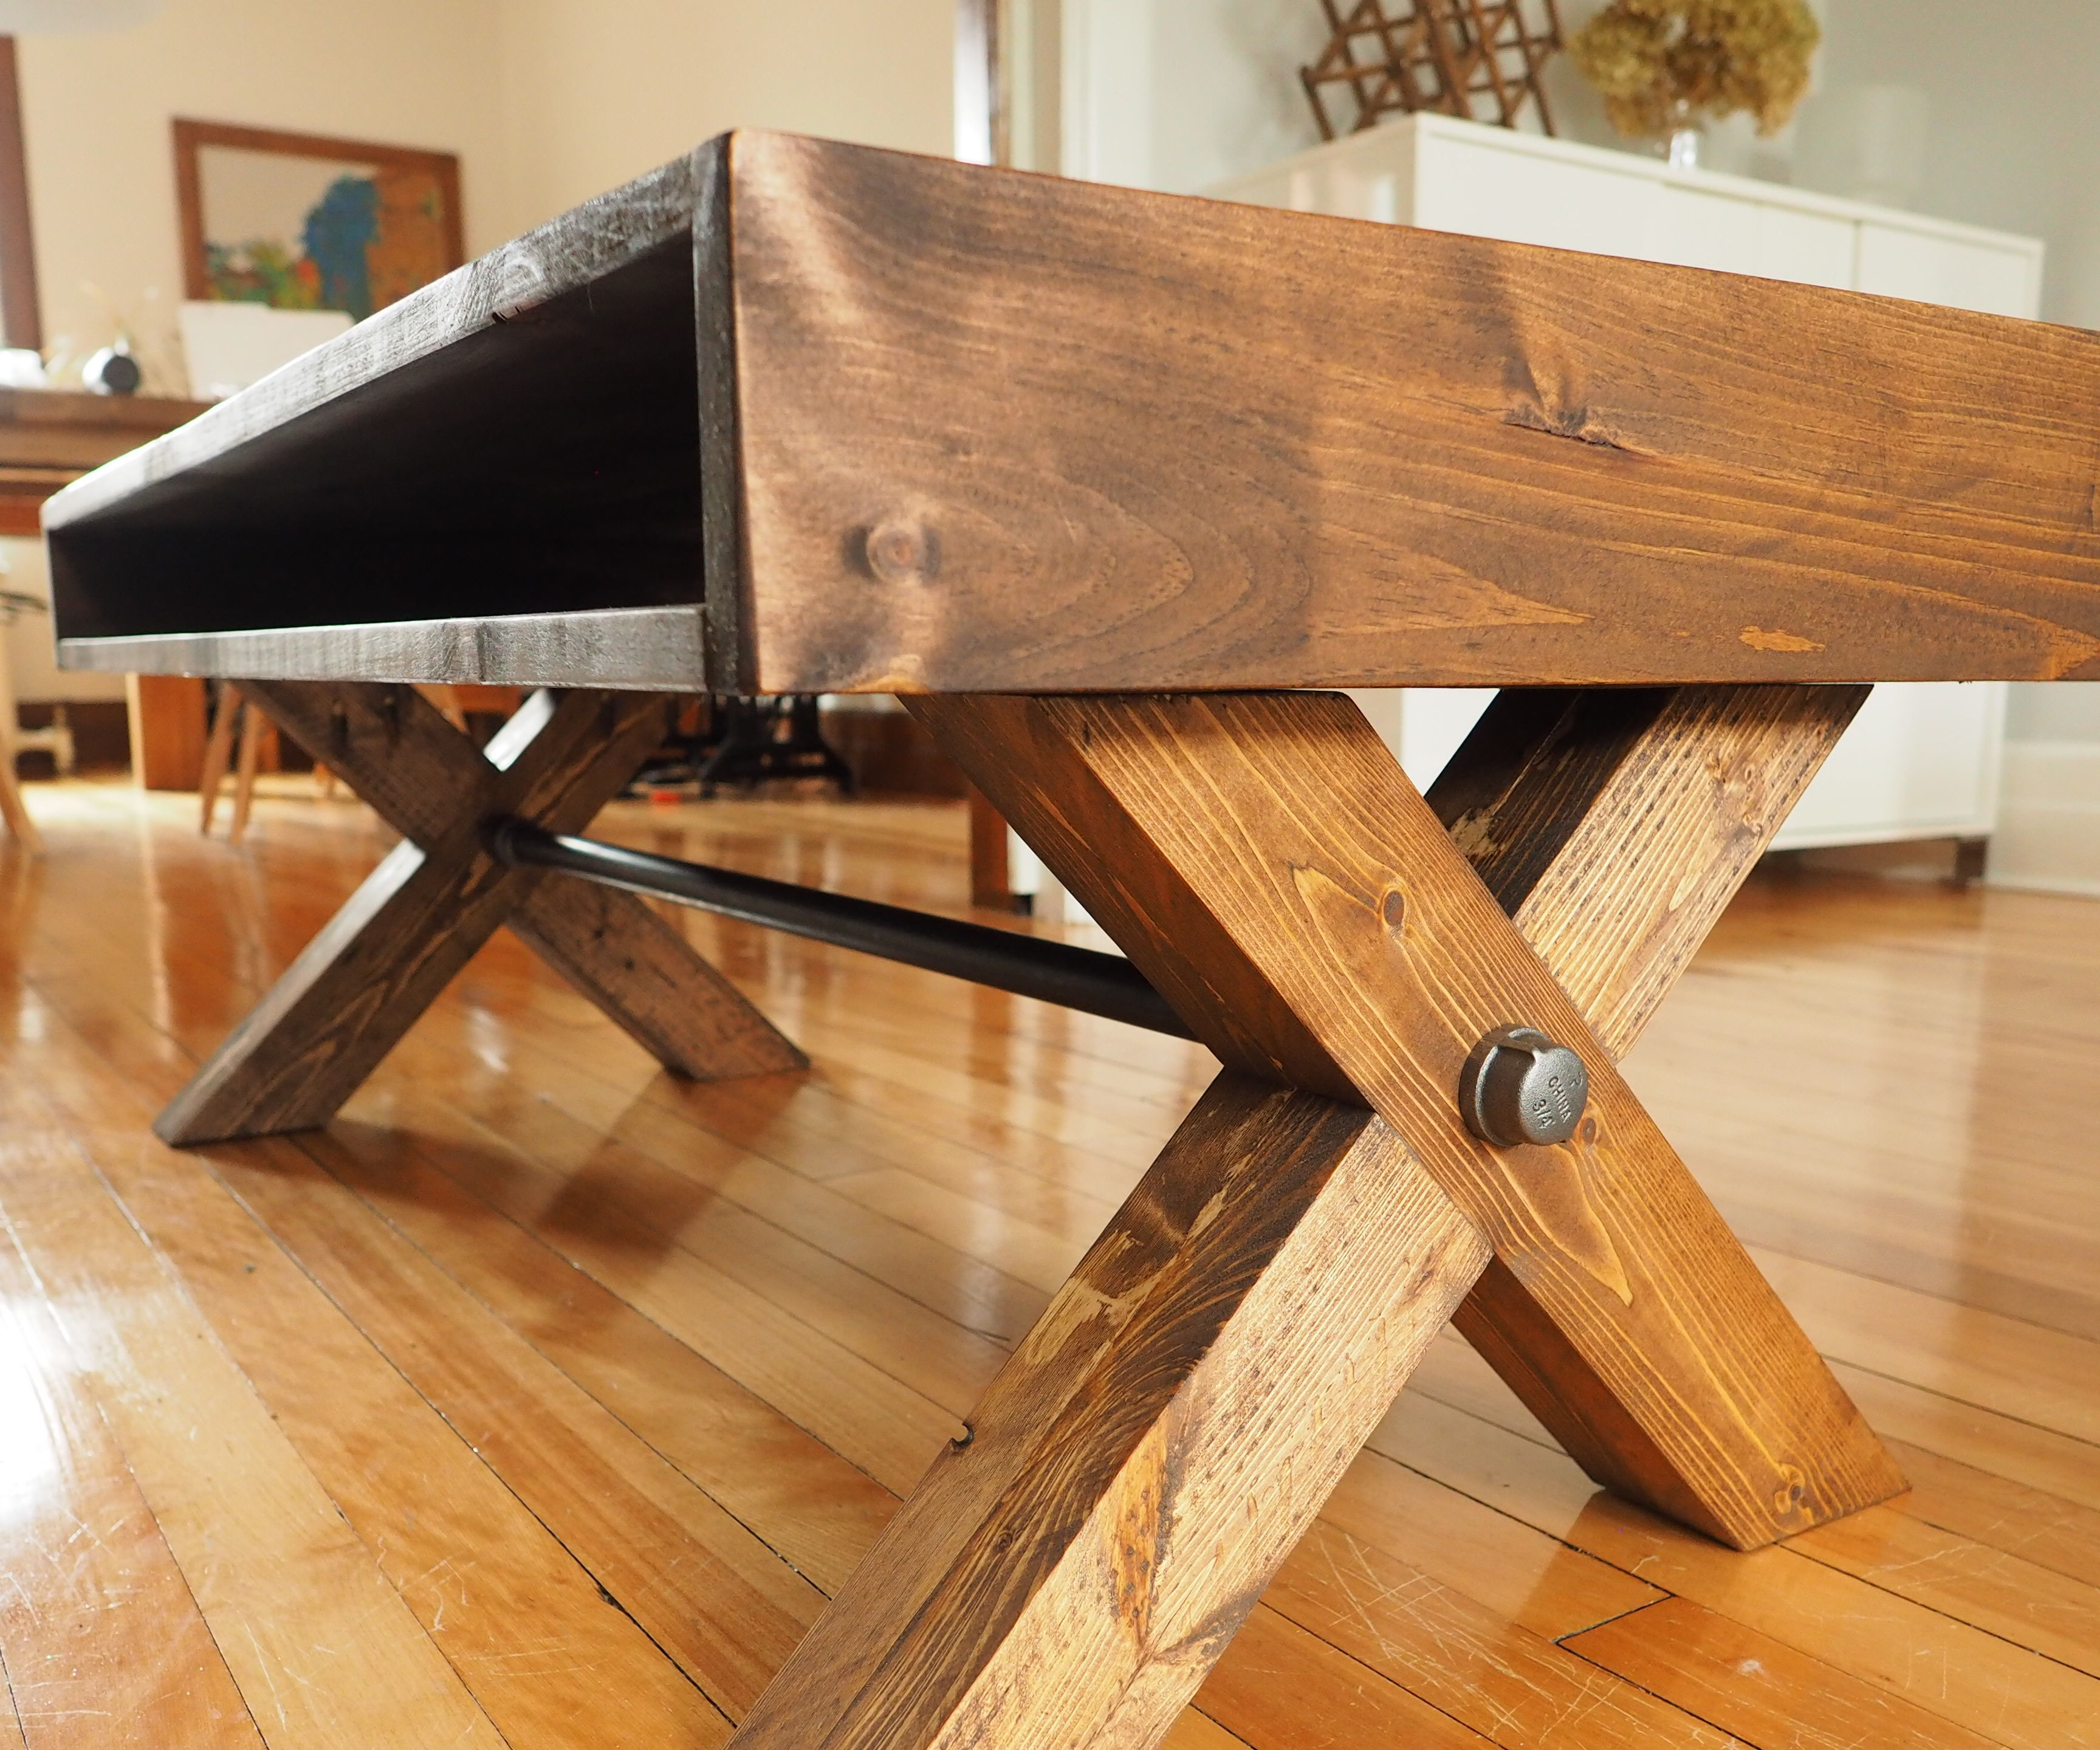 X Leg Coffee Table 9 Steps With Pictures Instructables